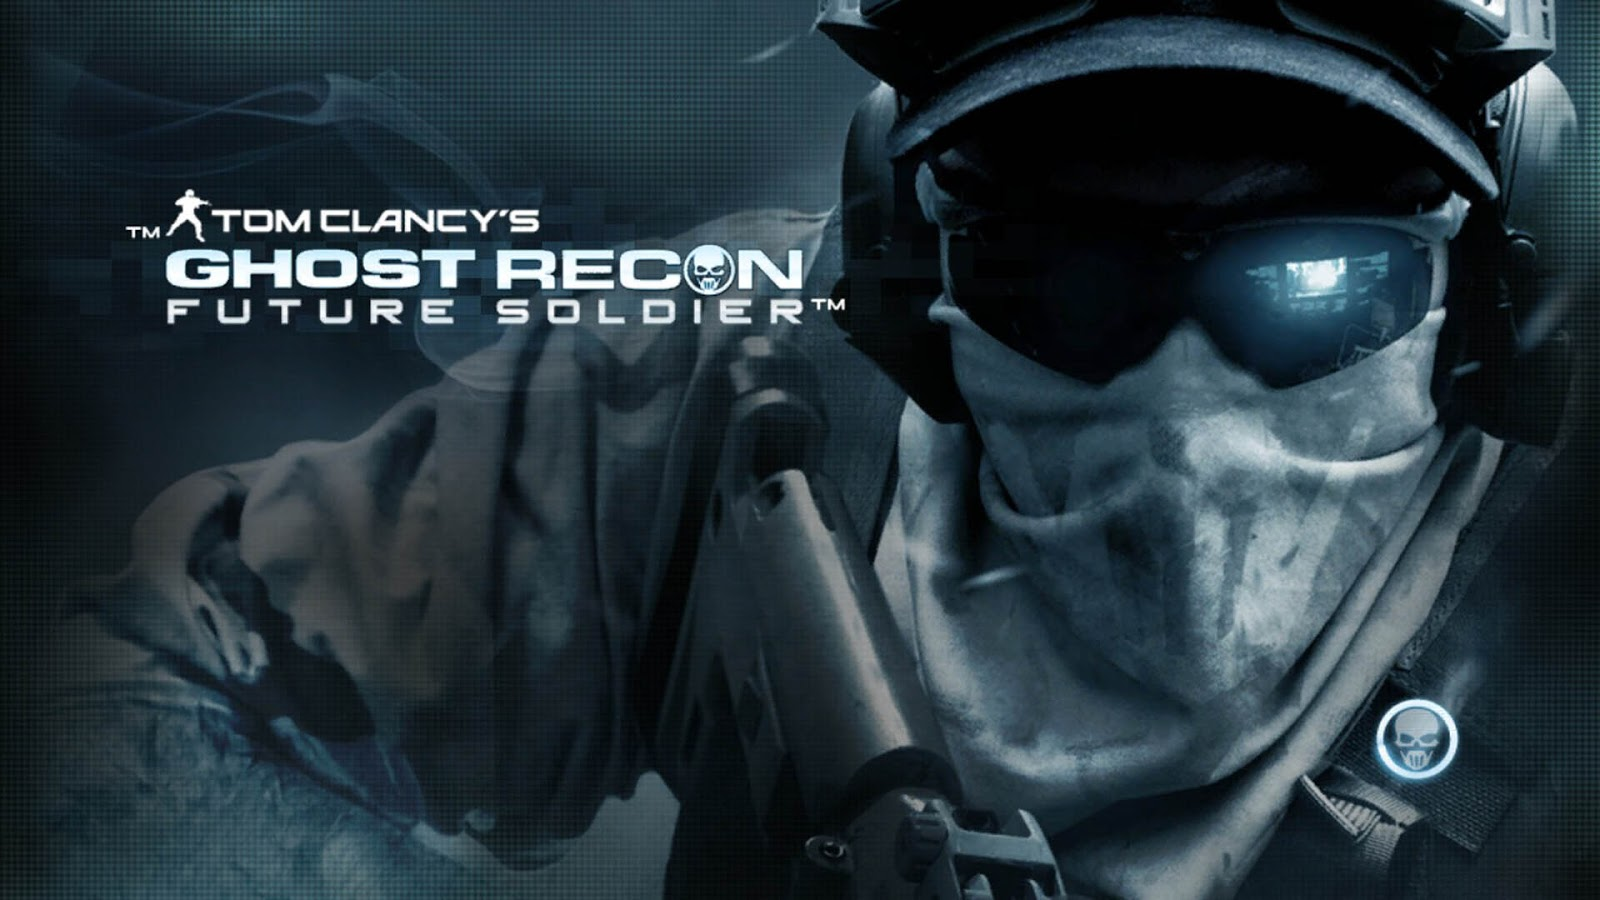 Ghost Recon Future Soldier HD & Widescreen Wallpaper 0.696454092202921